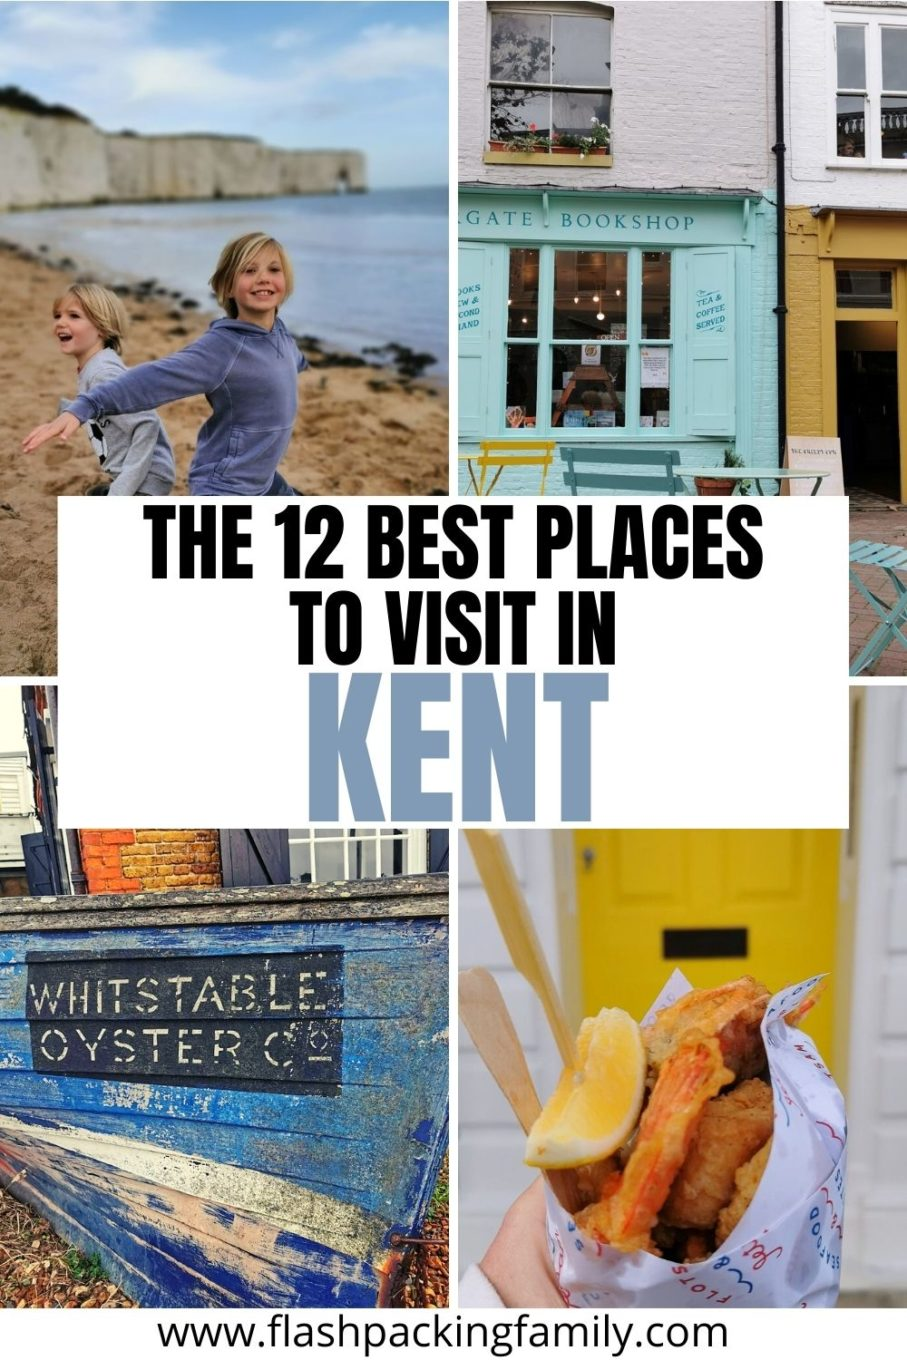 The 12 Best Places to visit in Kent